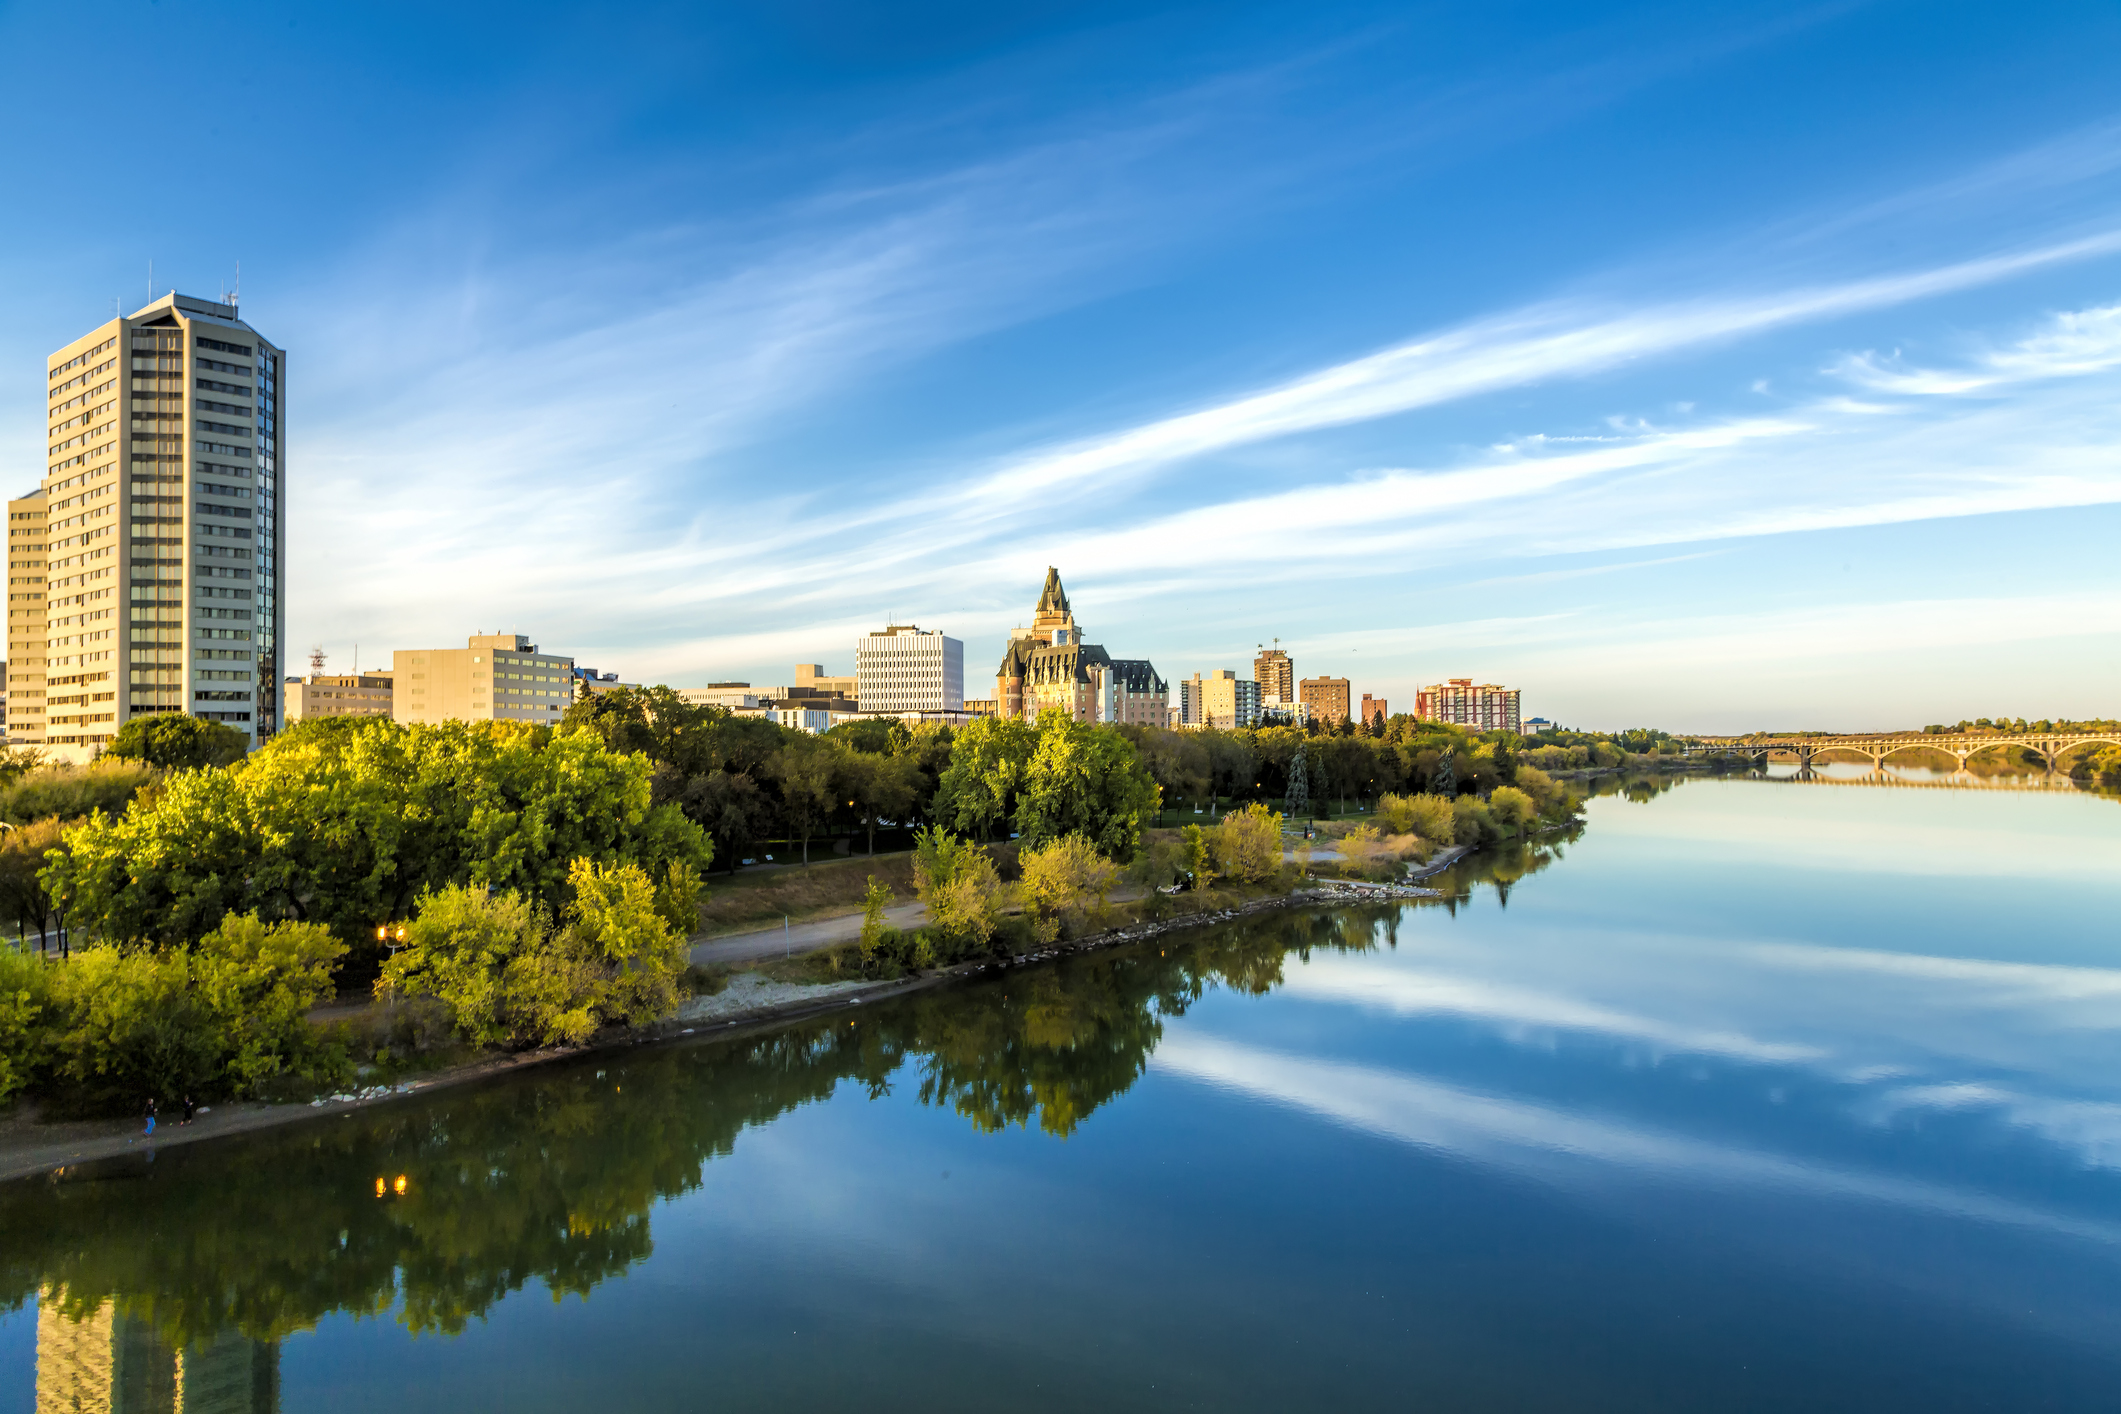 The city landscape in fall of Saskatoon which includes the buildings and South Saskatchewan River.